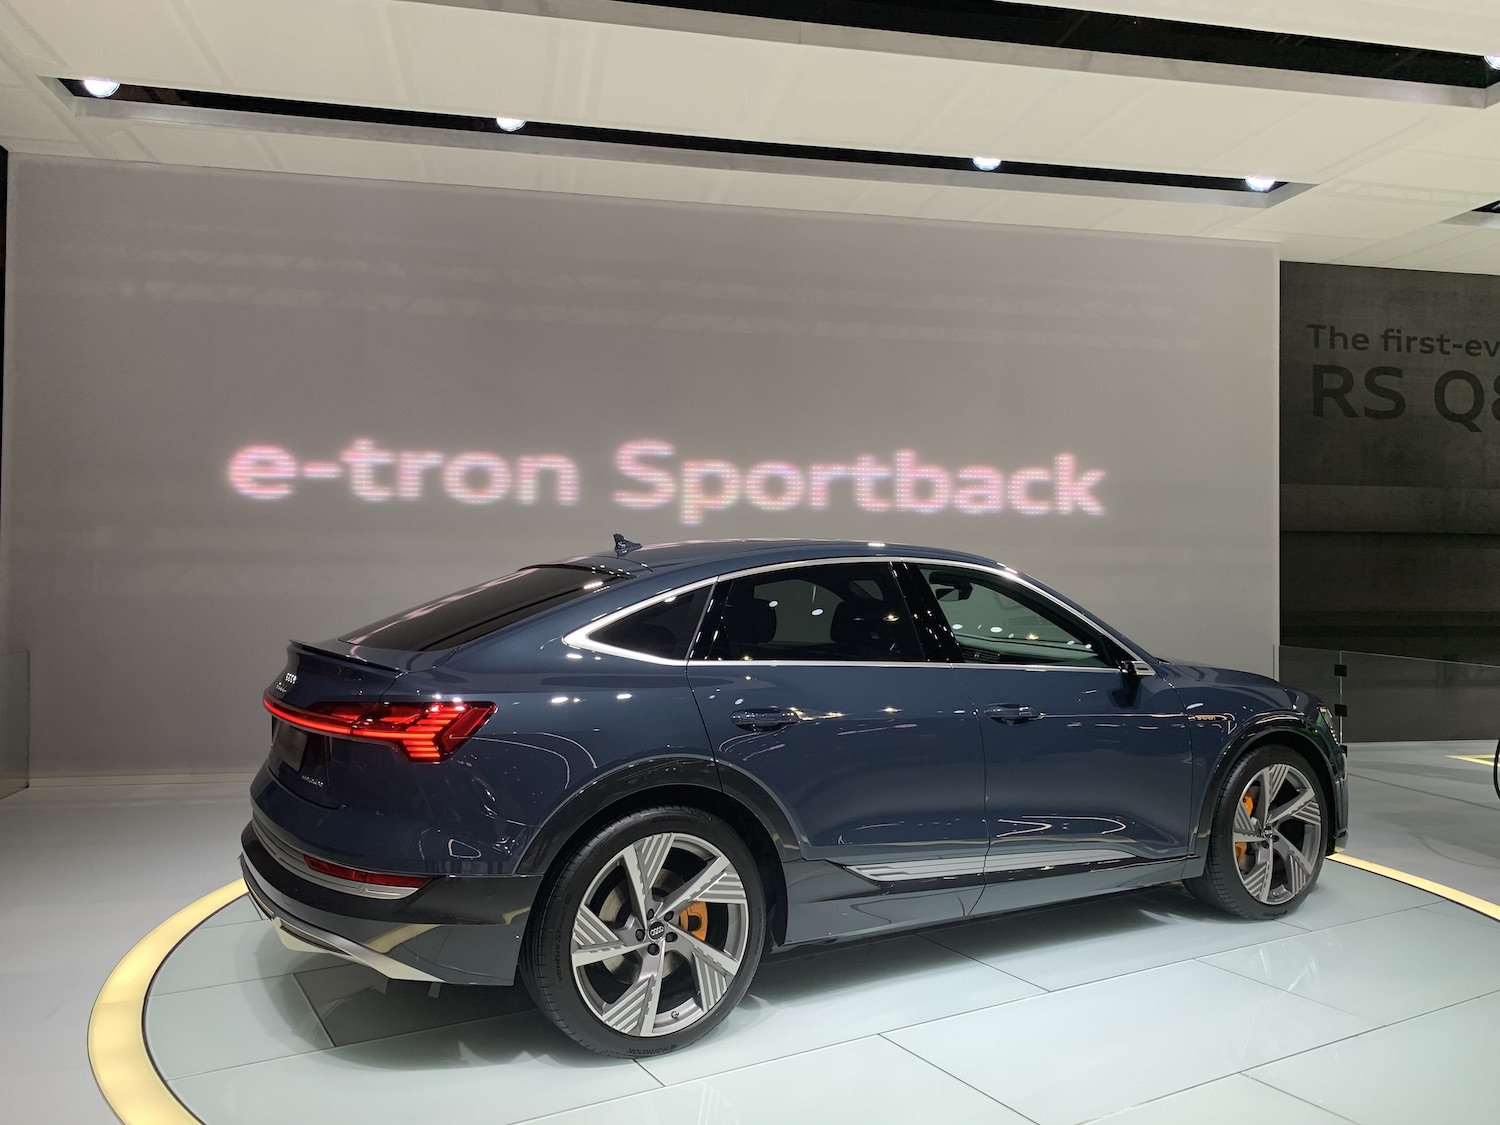 Audi etron sportback side profile